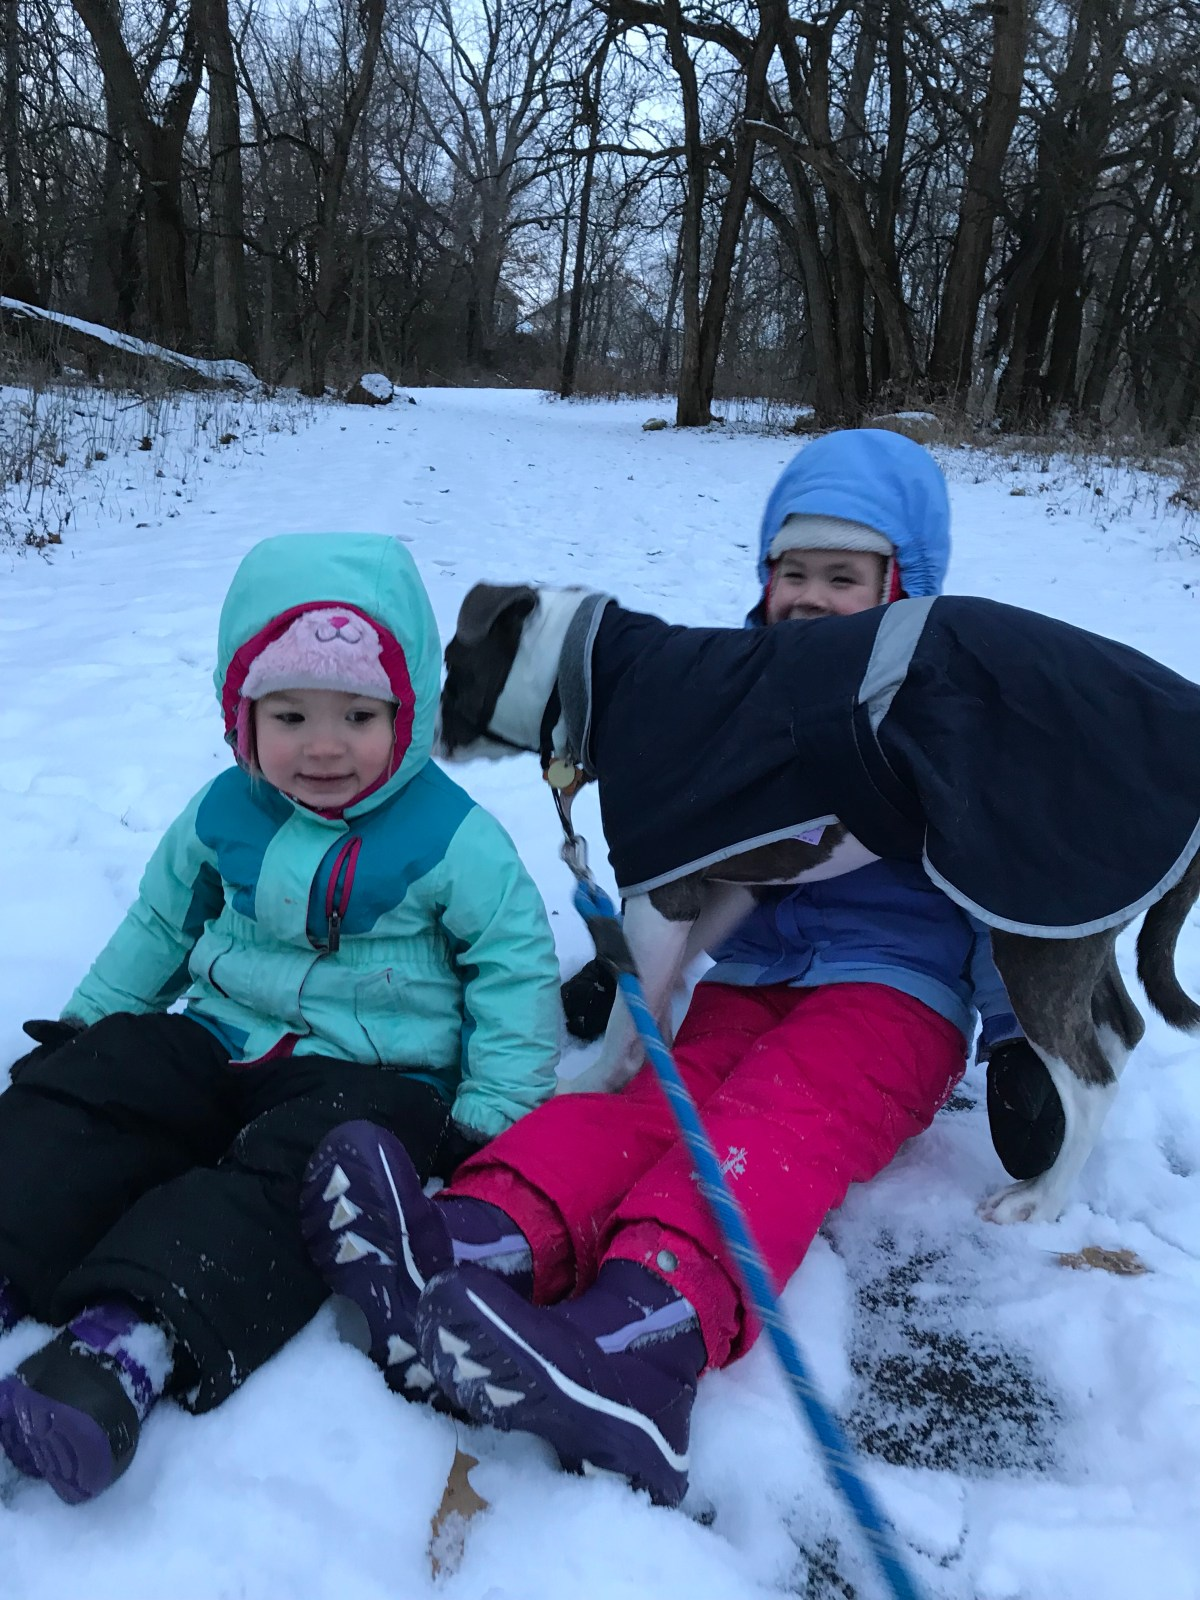 Is winter winning? Getting outdoors in the snow and cold can seem intimidating, and it doesn't always go well. Your kids will appreciate the outside play, even if you are ready to quit!